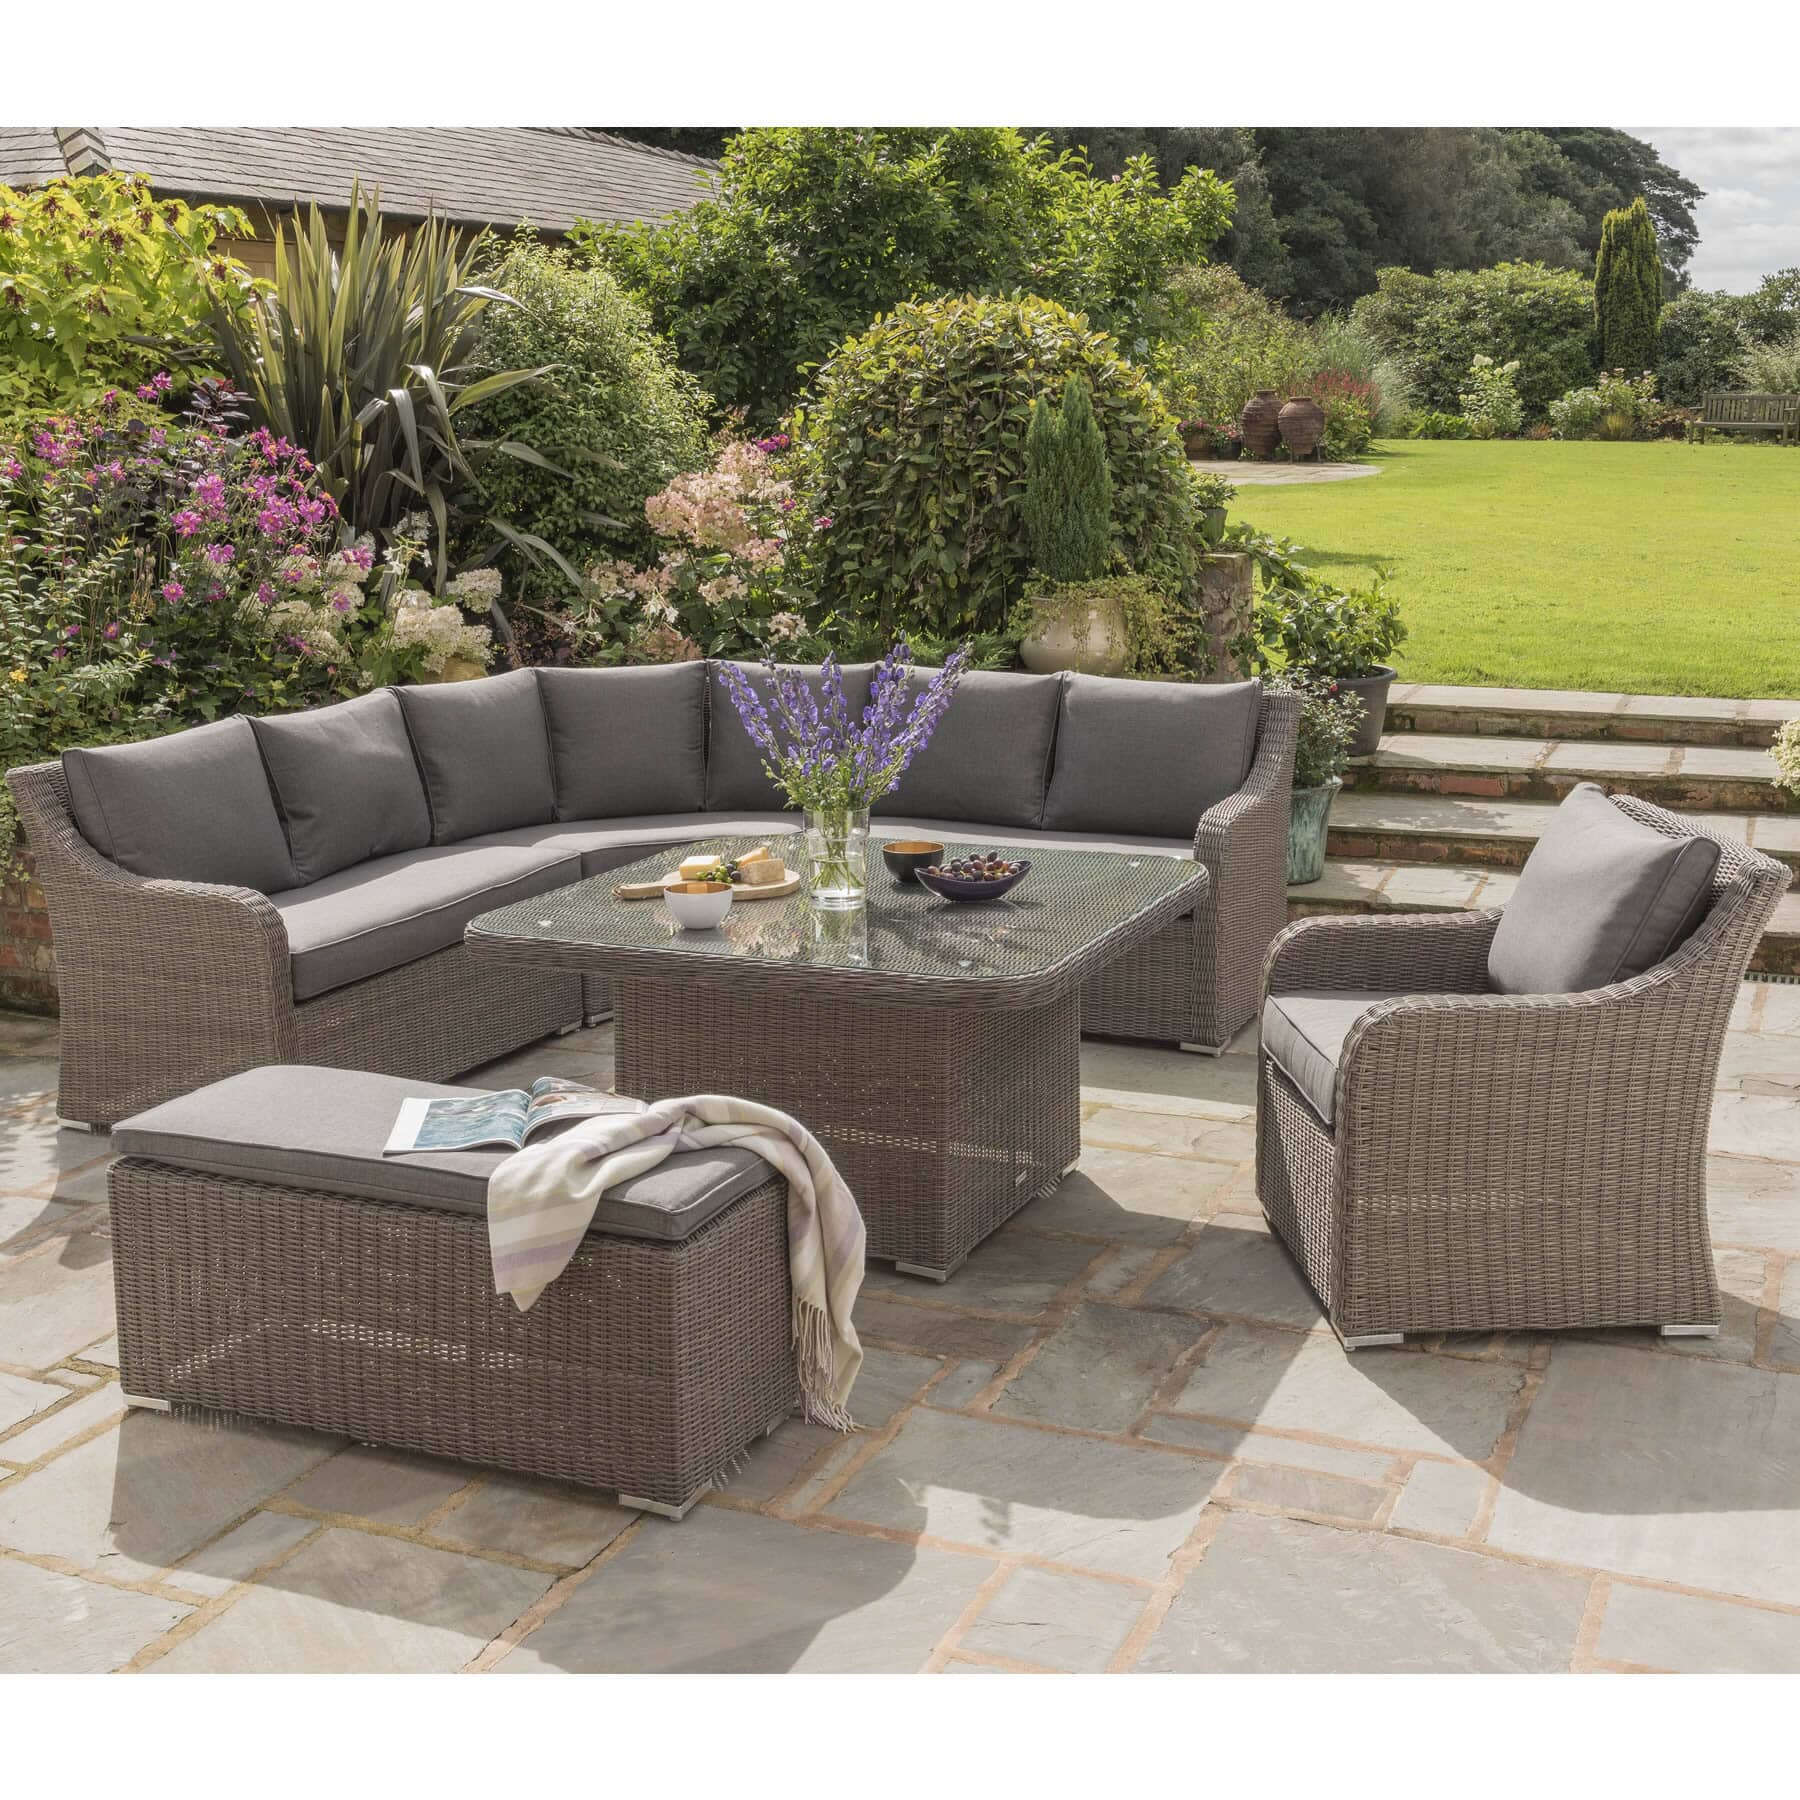 Kettler Madrid Complete Corner Set In Rattan With Taupe ...